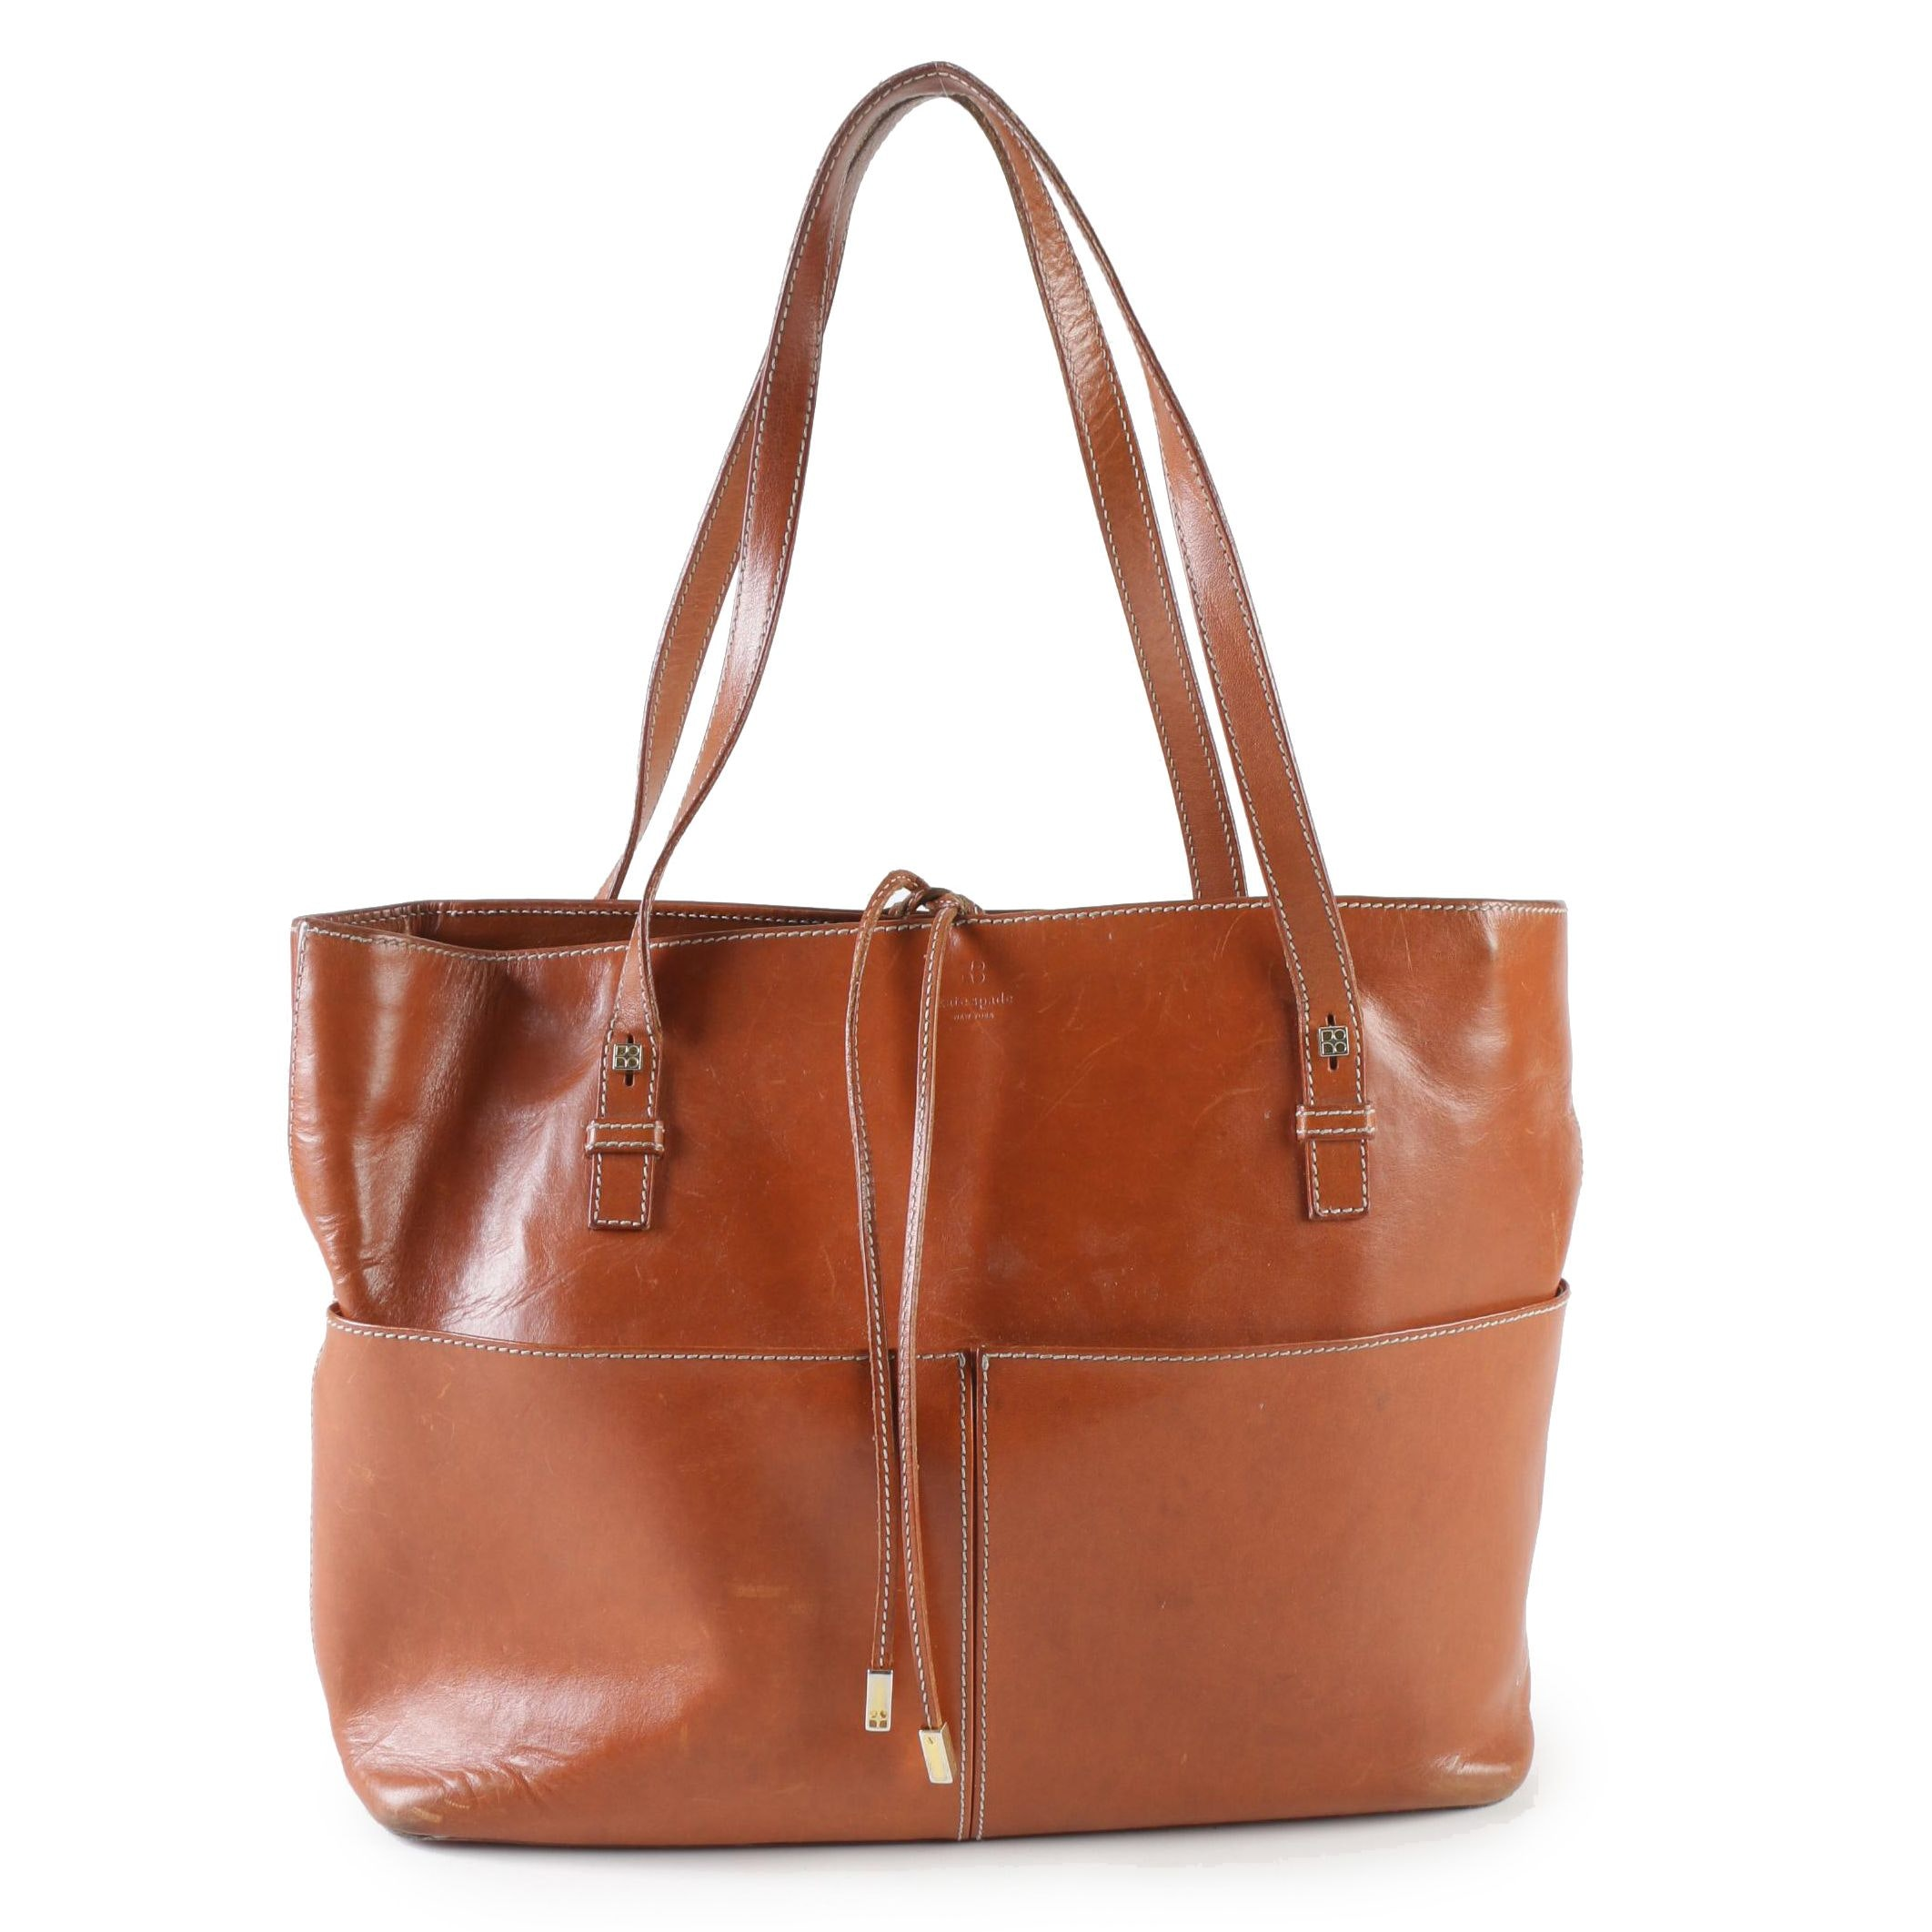 Kate Spade New York Cognac Leather Tote Shoulder Bag